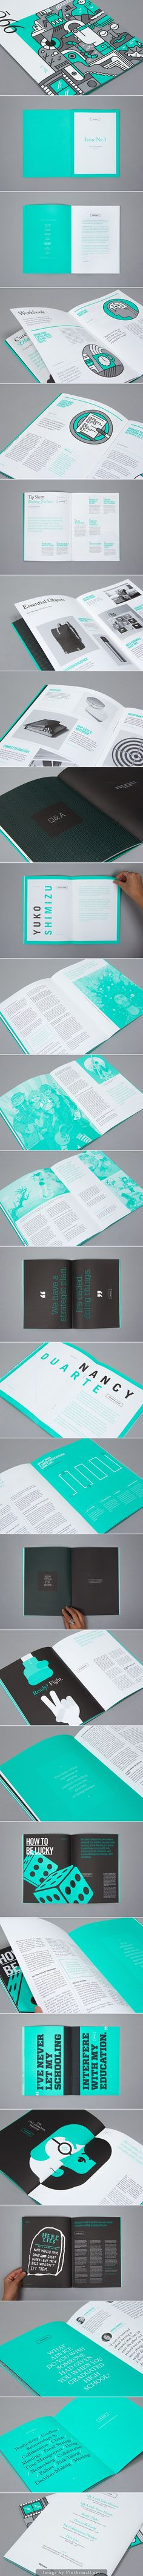 Quarterly Magazine - Issue / Editorial and graphic design with iconic illustrations only printed with two inks Identity Design, Design Brochure, Booklet Design, Brochure Layout, Graphic Design Layouts, Book Design Layout, Print Layout, Freelance Graphic Design, Editorial Design Inspiration